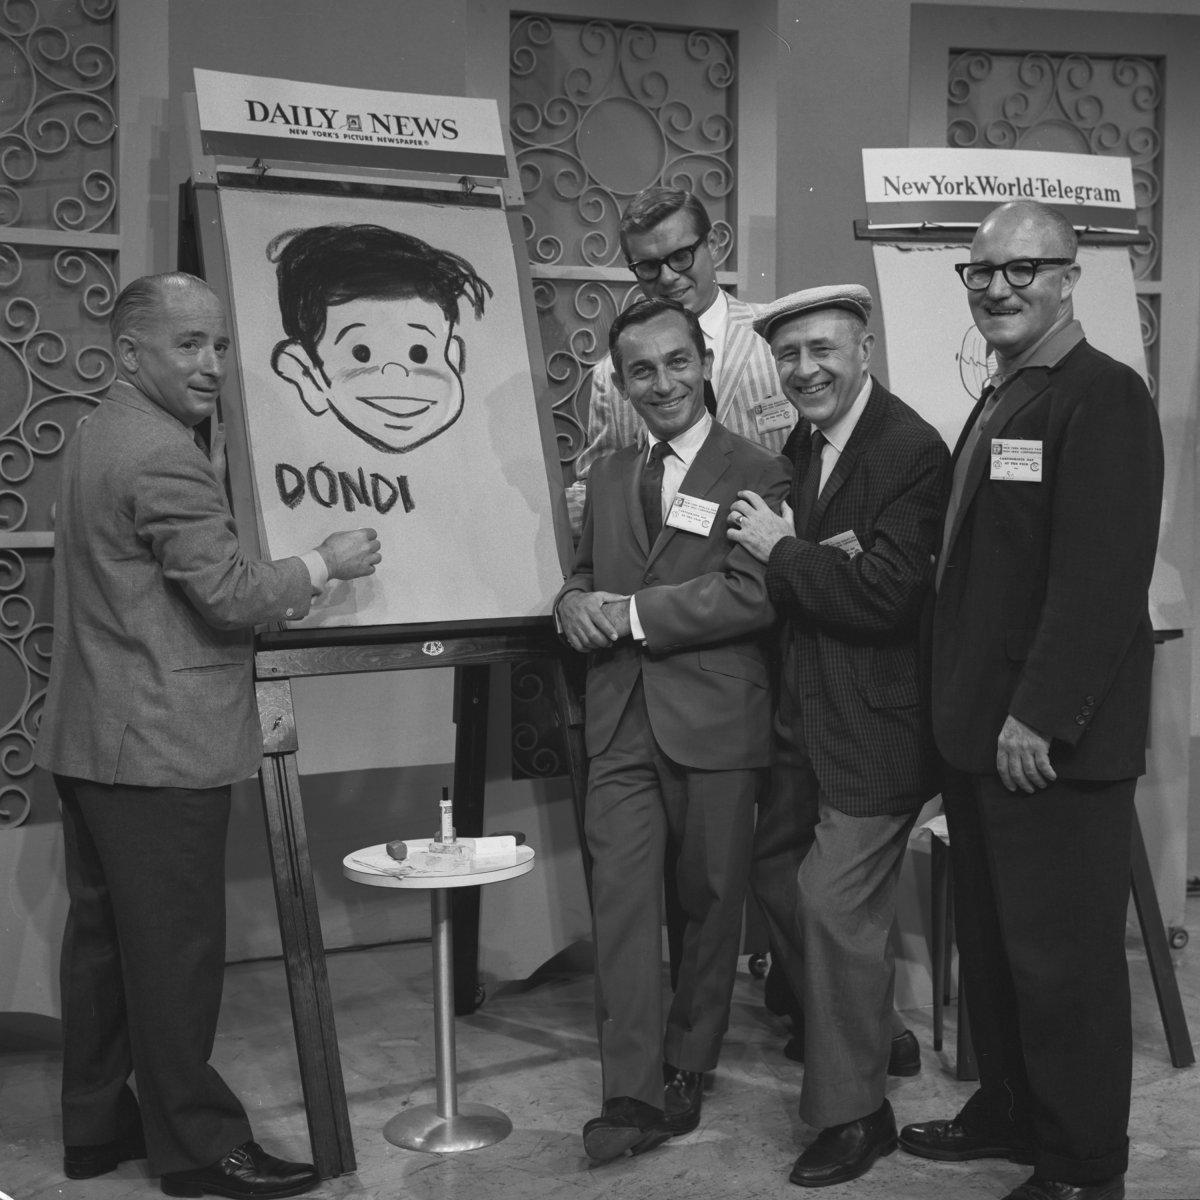 Irwin Hasen shows Daily News cartoonists how he did what he did. From the left: Irwin Hasen, Alfred Andriola; Bill Holman, and Don Figlozzi and (rear) Leonard Starr.